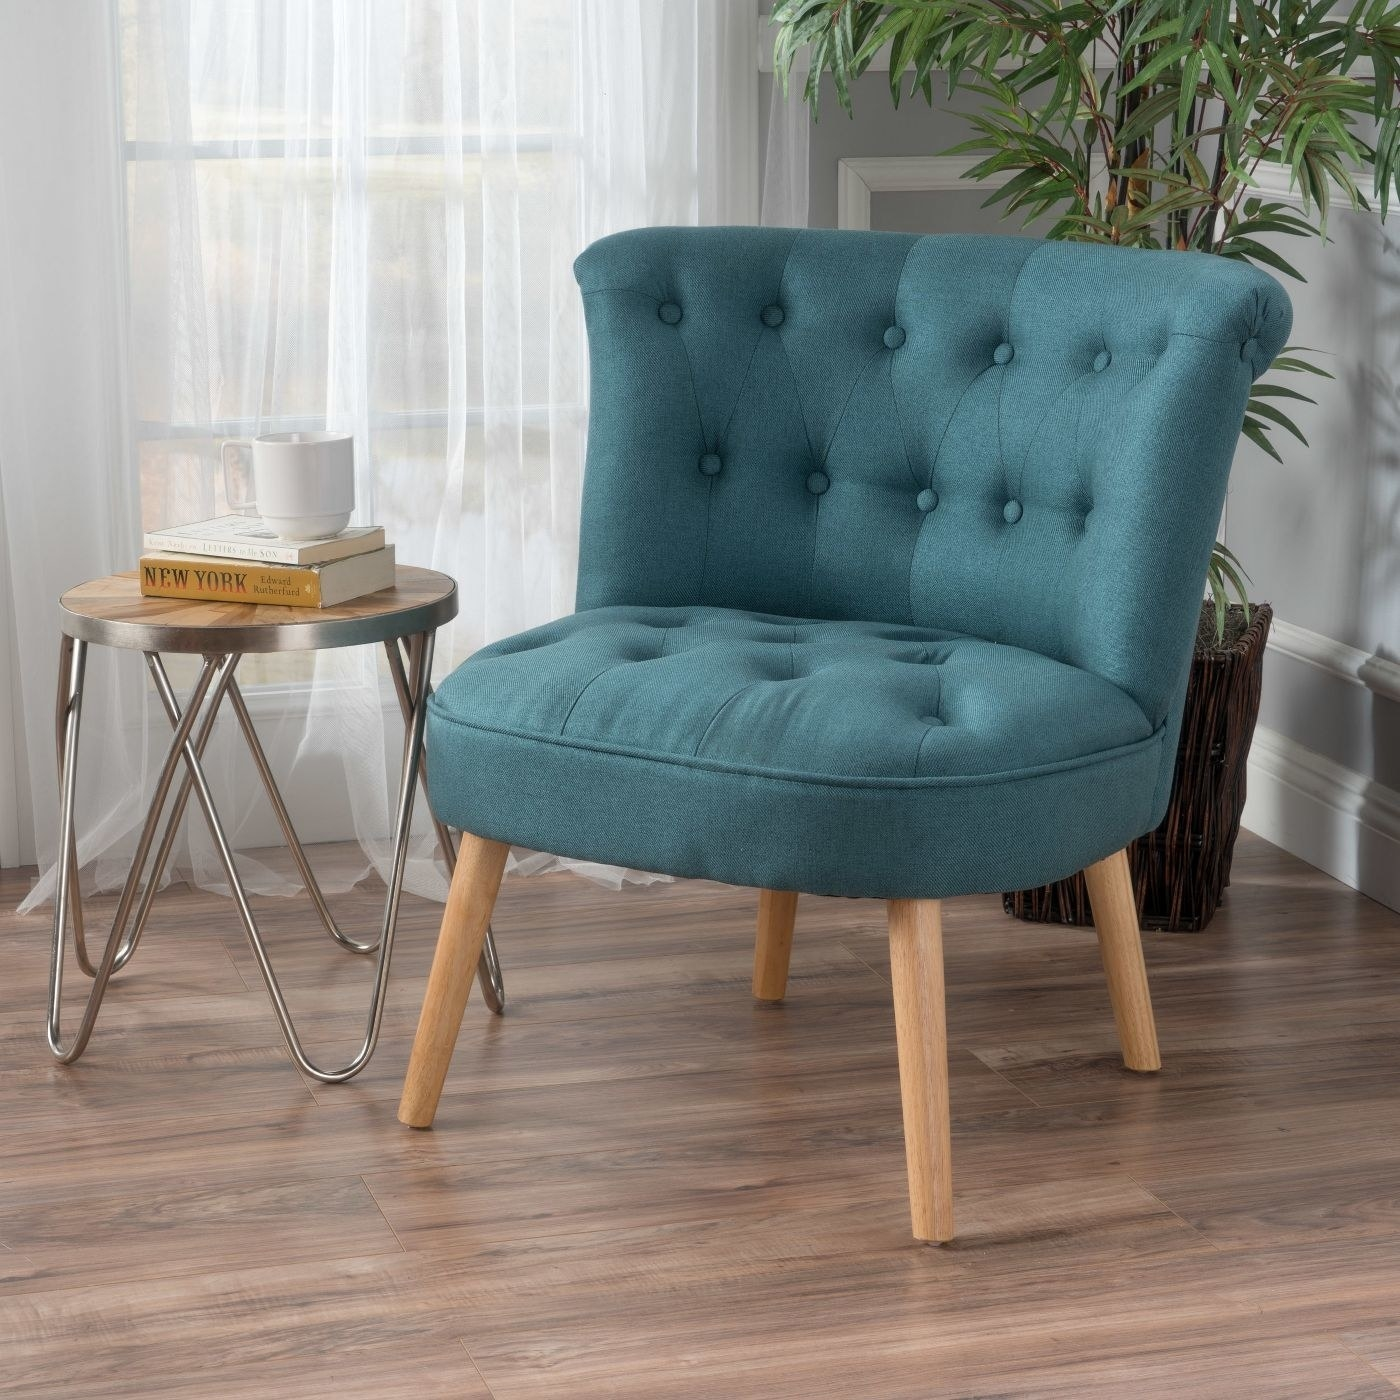 blue tufted accent chair in the corner of a room